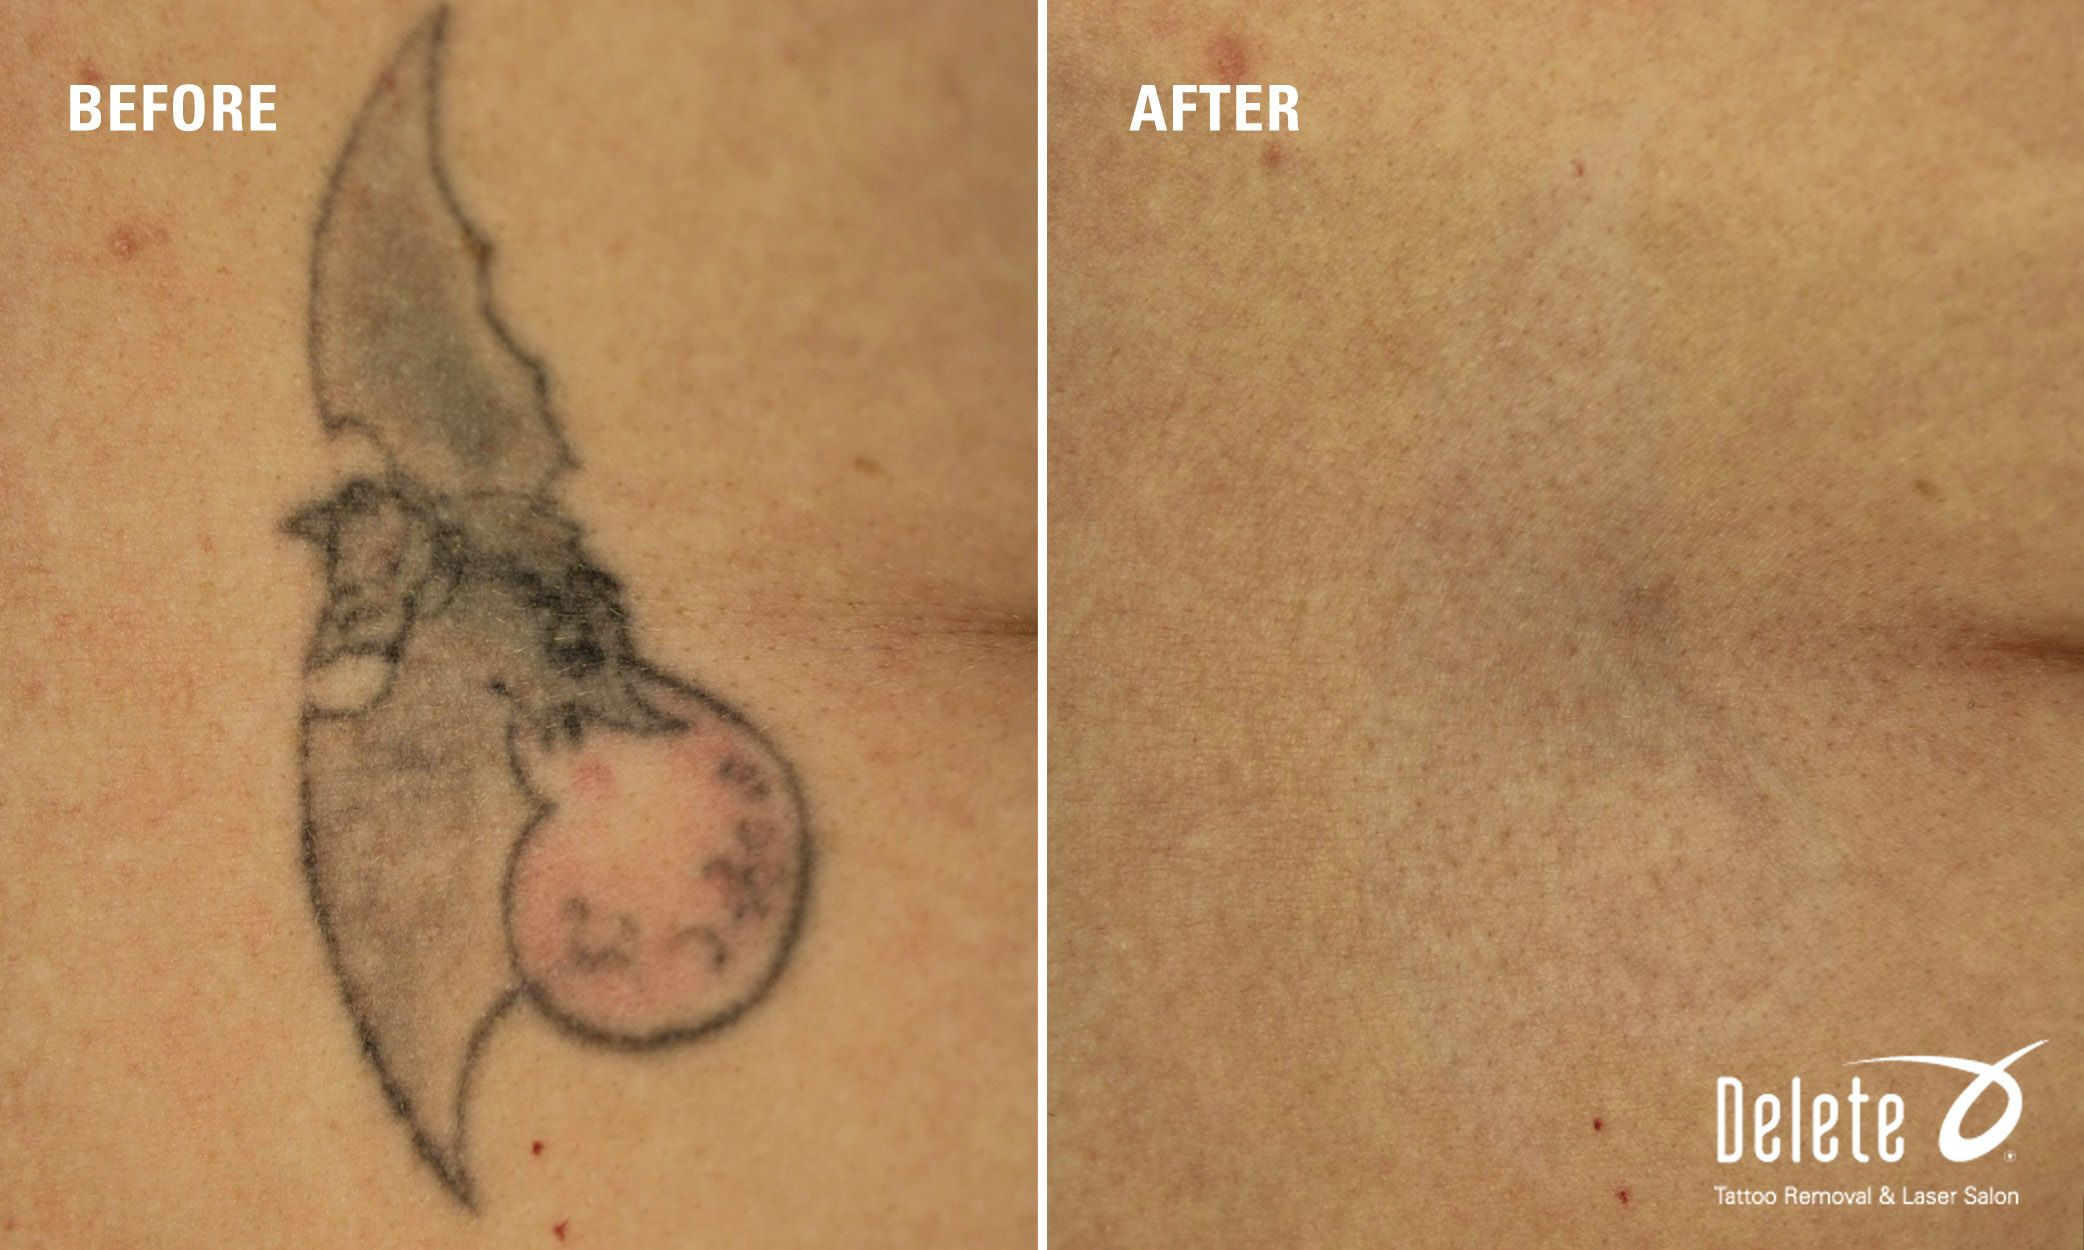 Tattoo Removal Before And After Photos Tattoo Removal Results Tattoo Removal Results Laser Tattoo Removal Tattoos